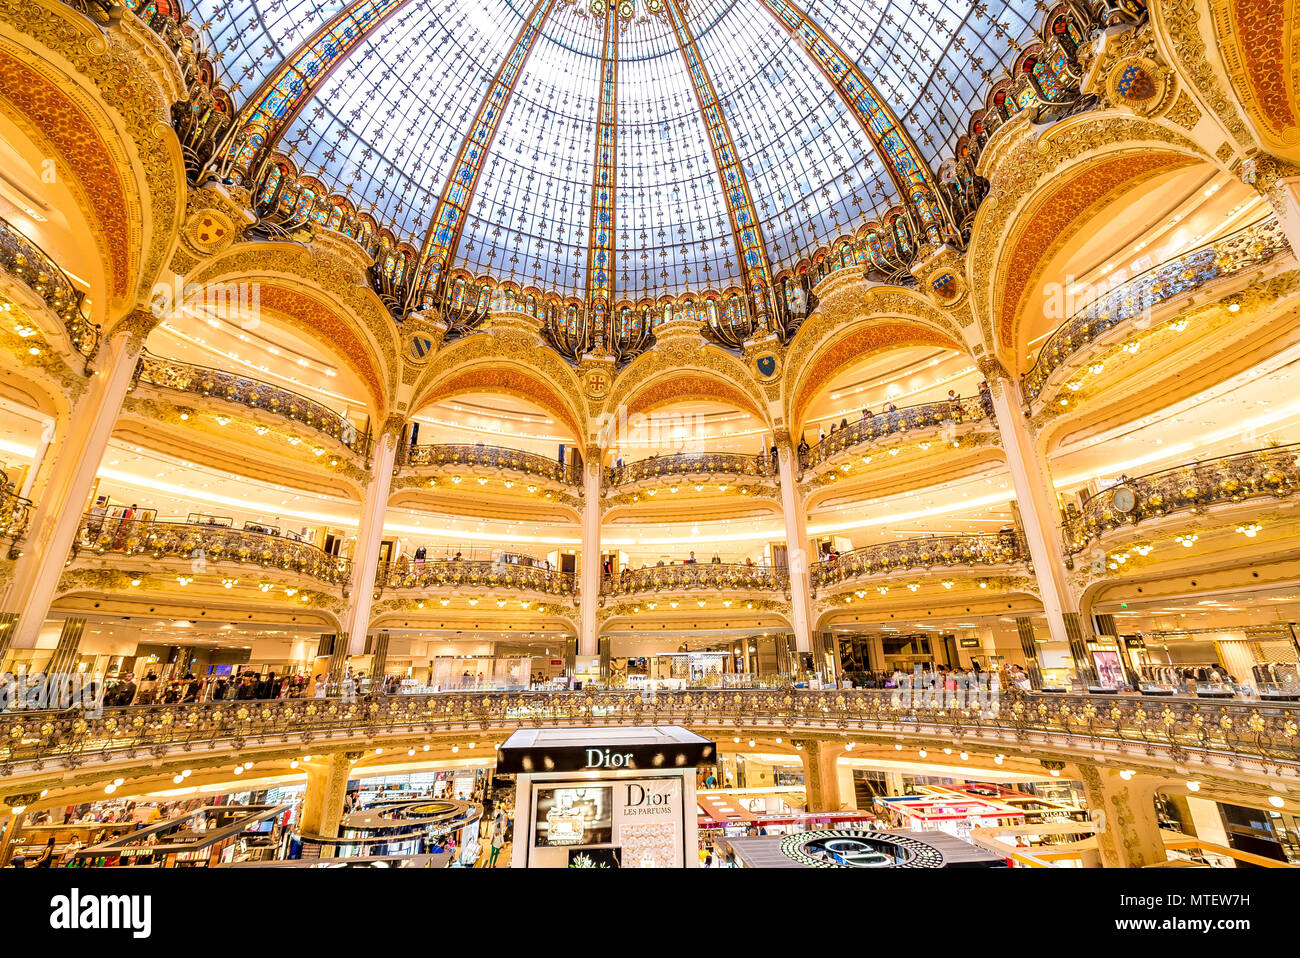 The impressive and beautiful Galleries Lafayette in Paris, France - Stock Image